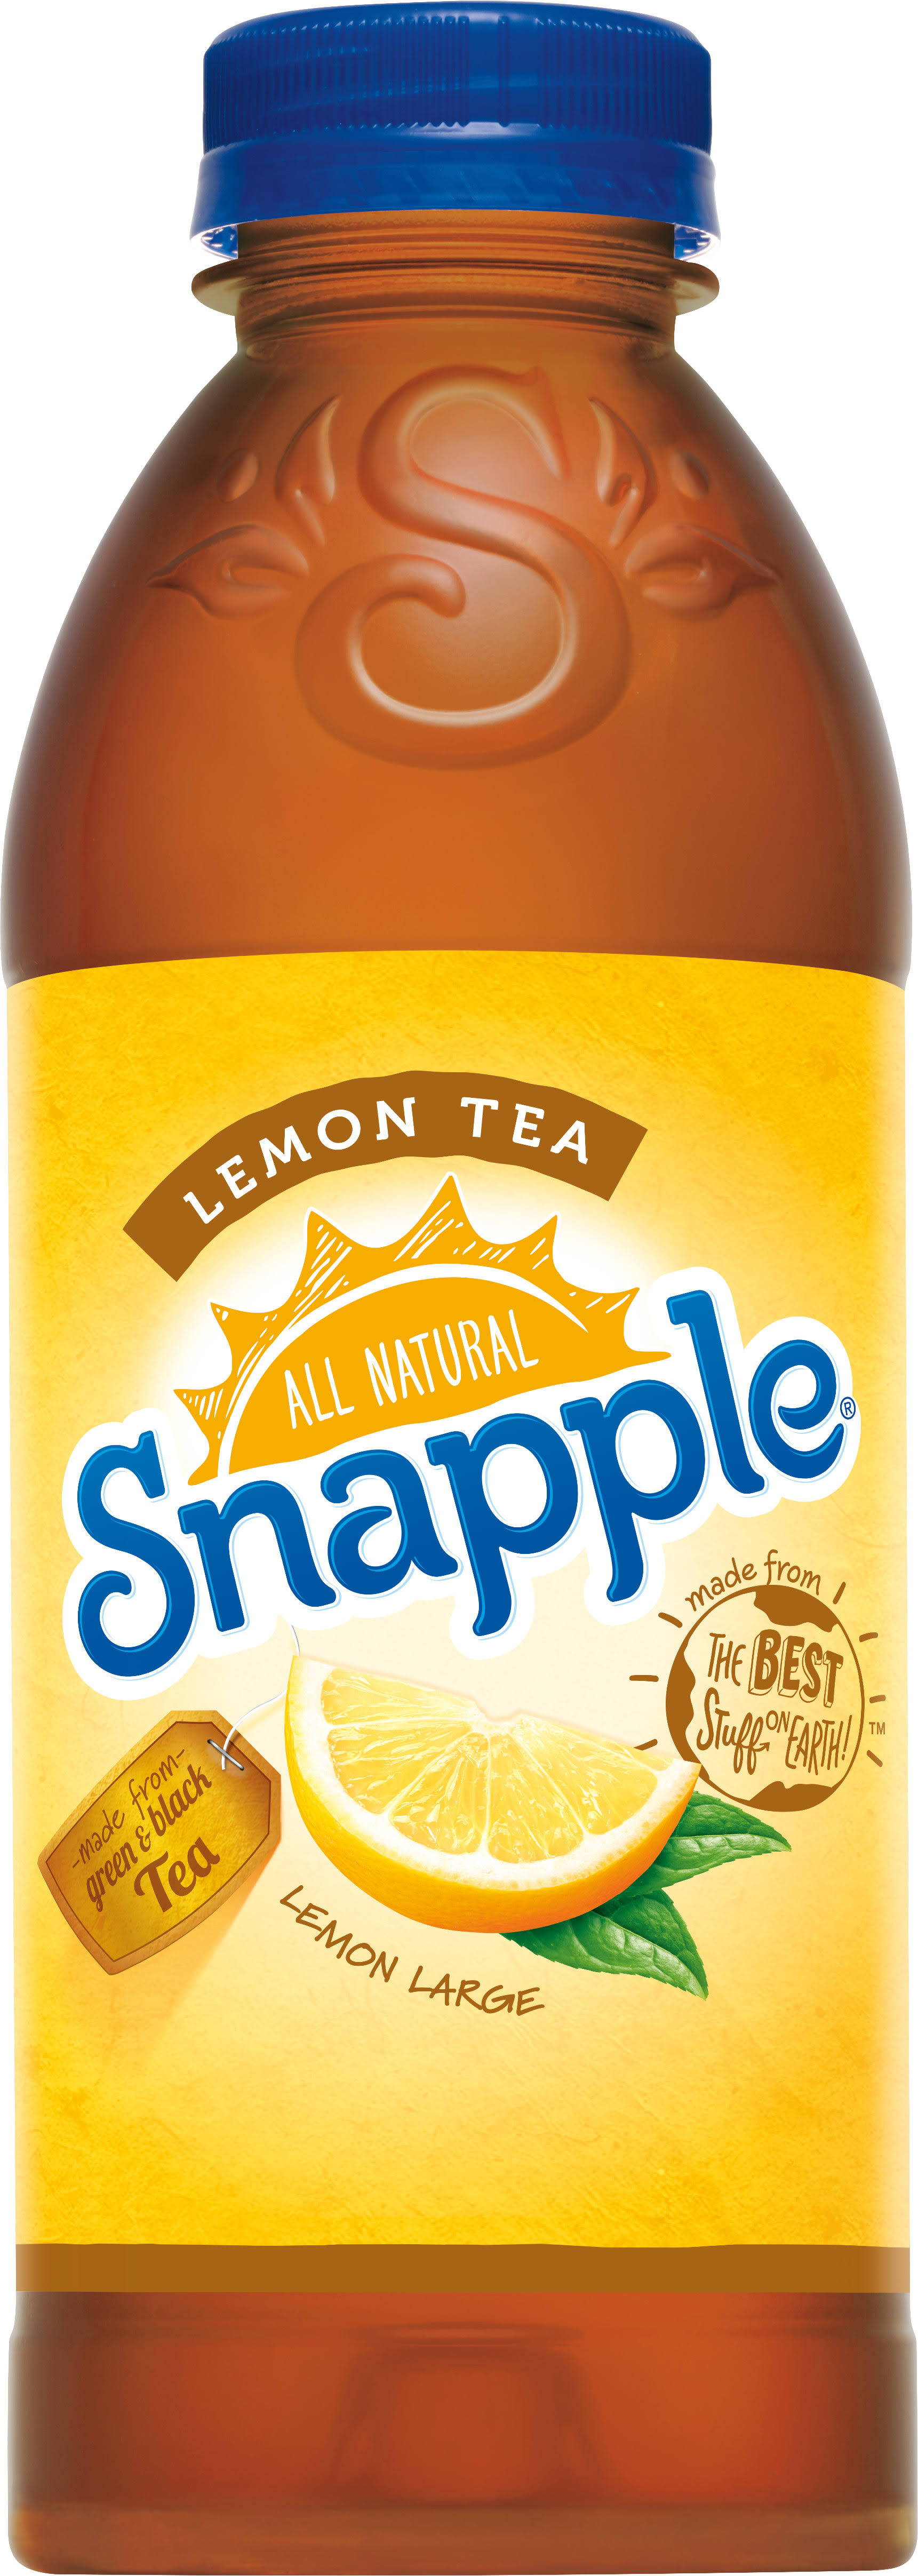 Snapple Lemon Tea